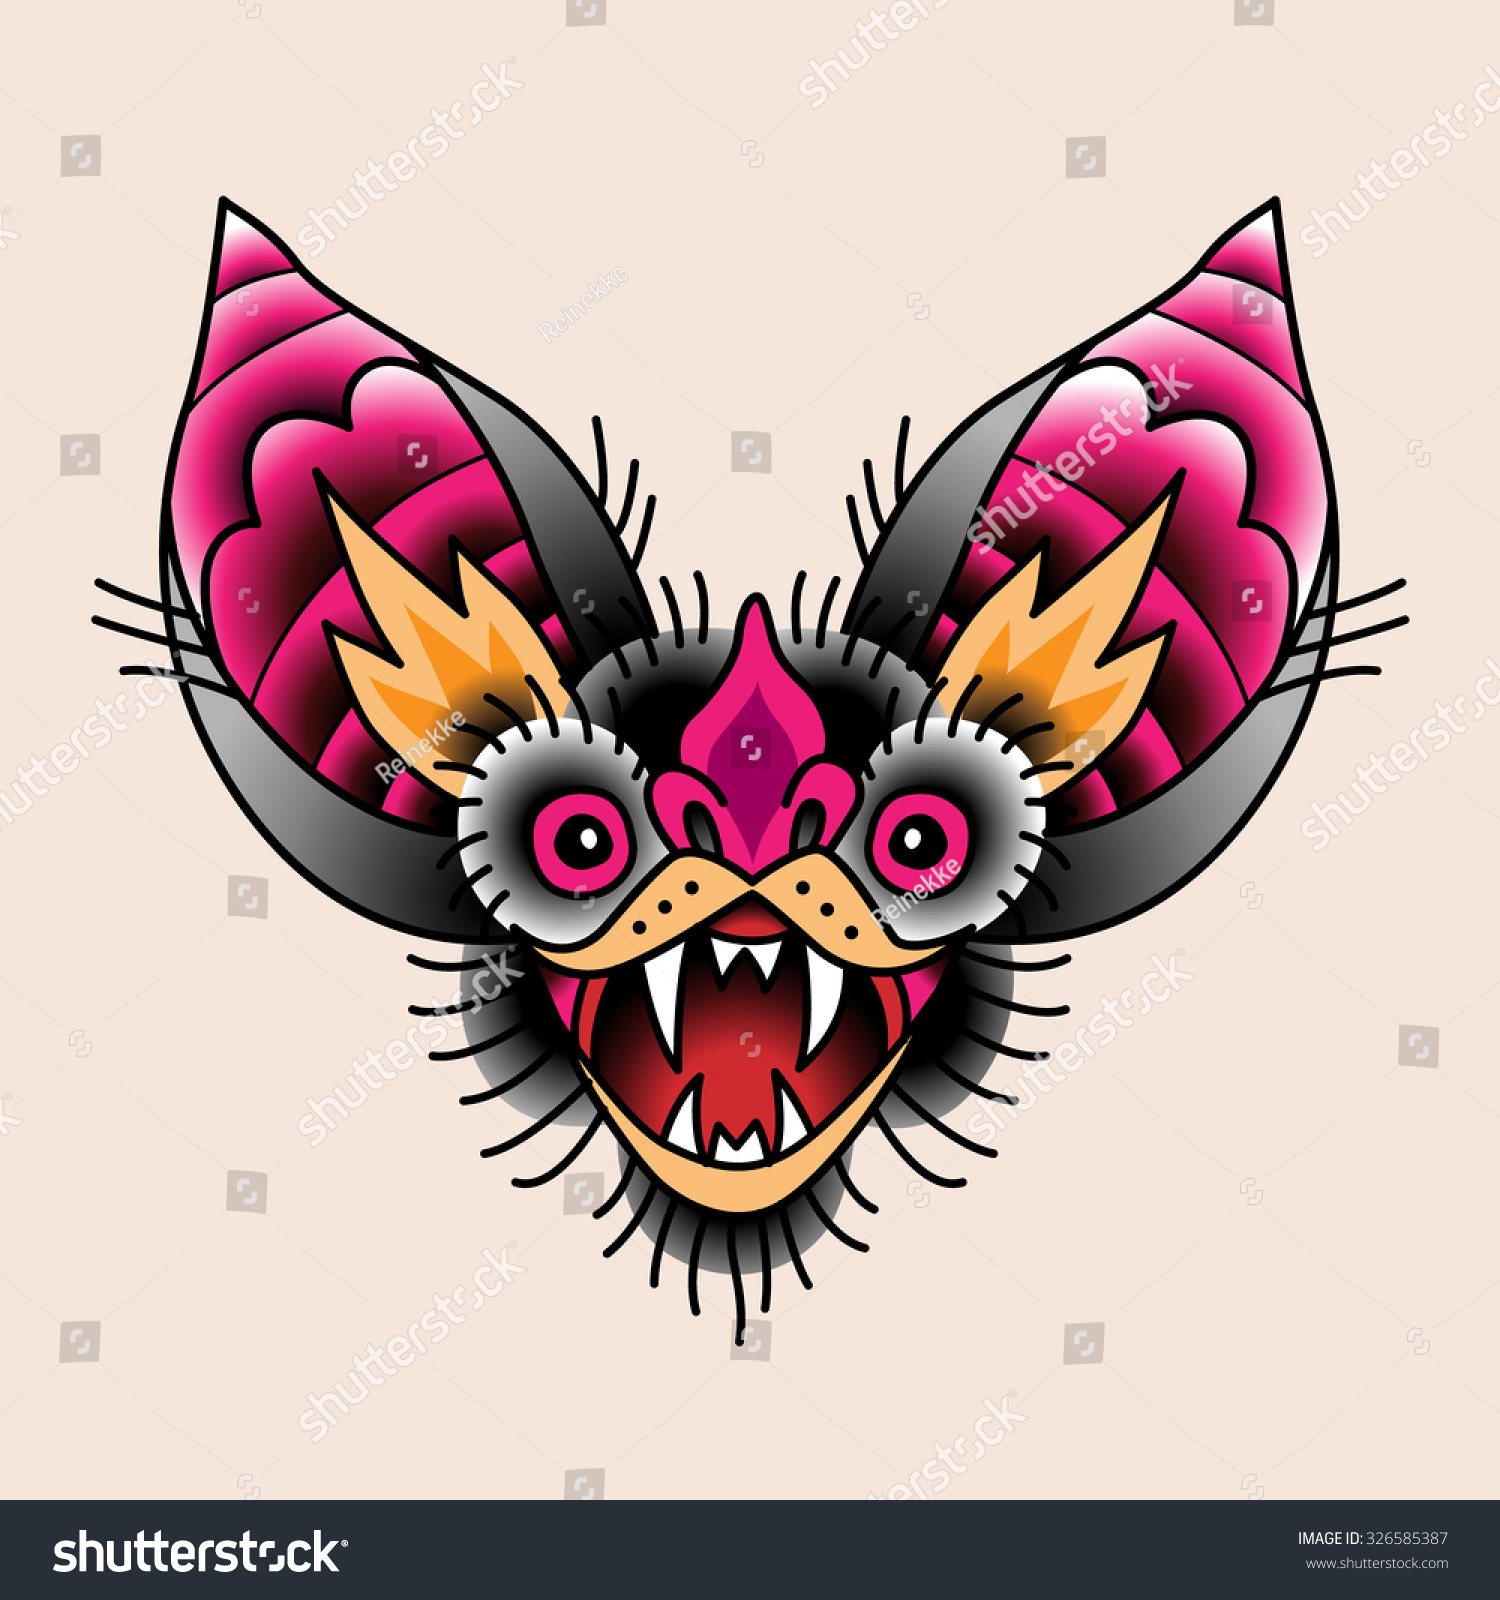 Head bat open mouth traditional tattoo stock vector 326585387 the head of a bat with open mouth traditional tattoo symbol for your design buycottarizona Choice Image